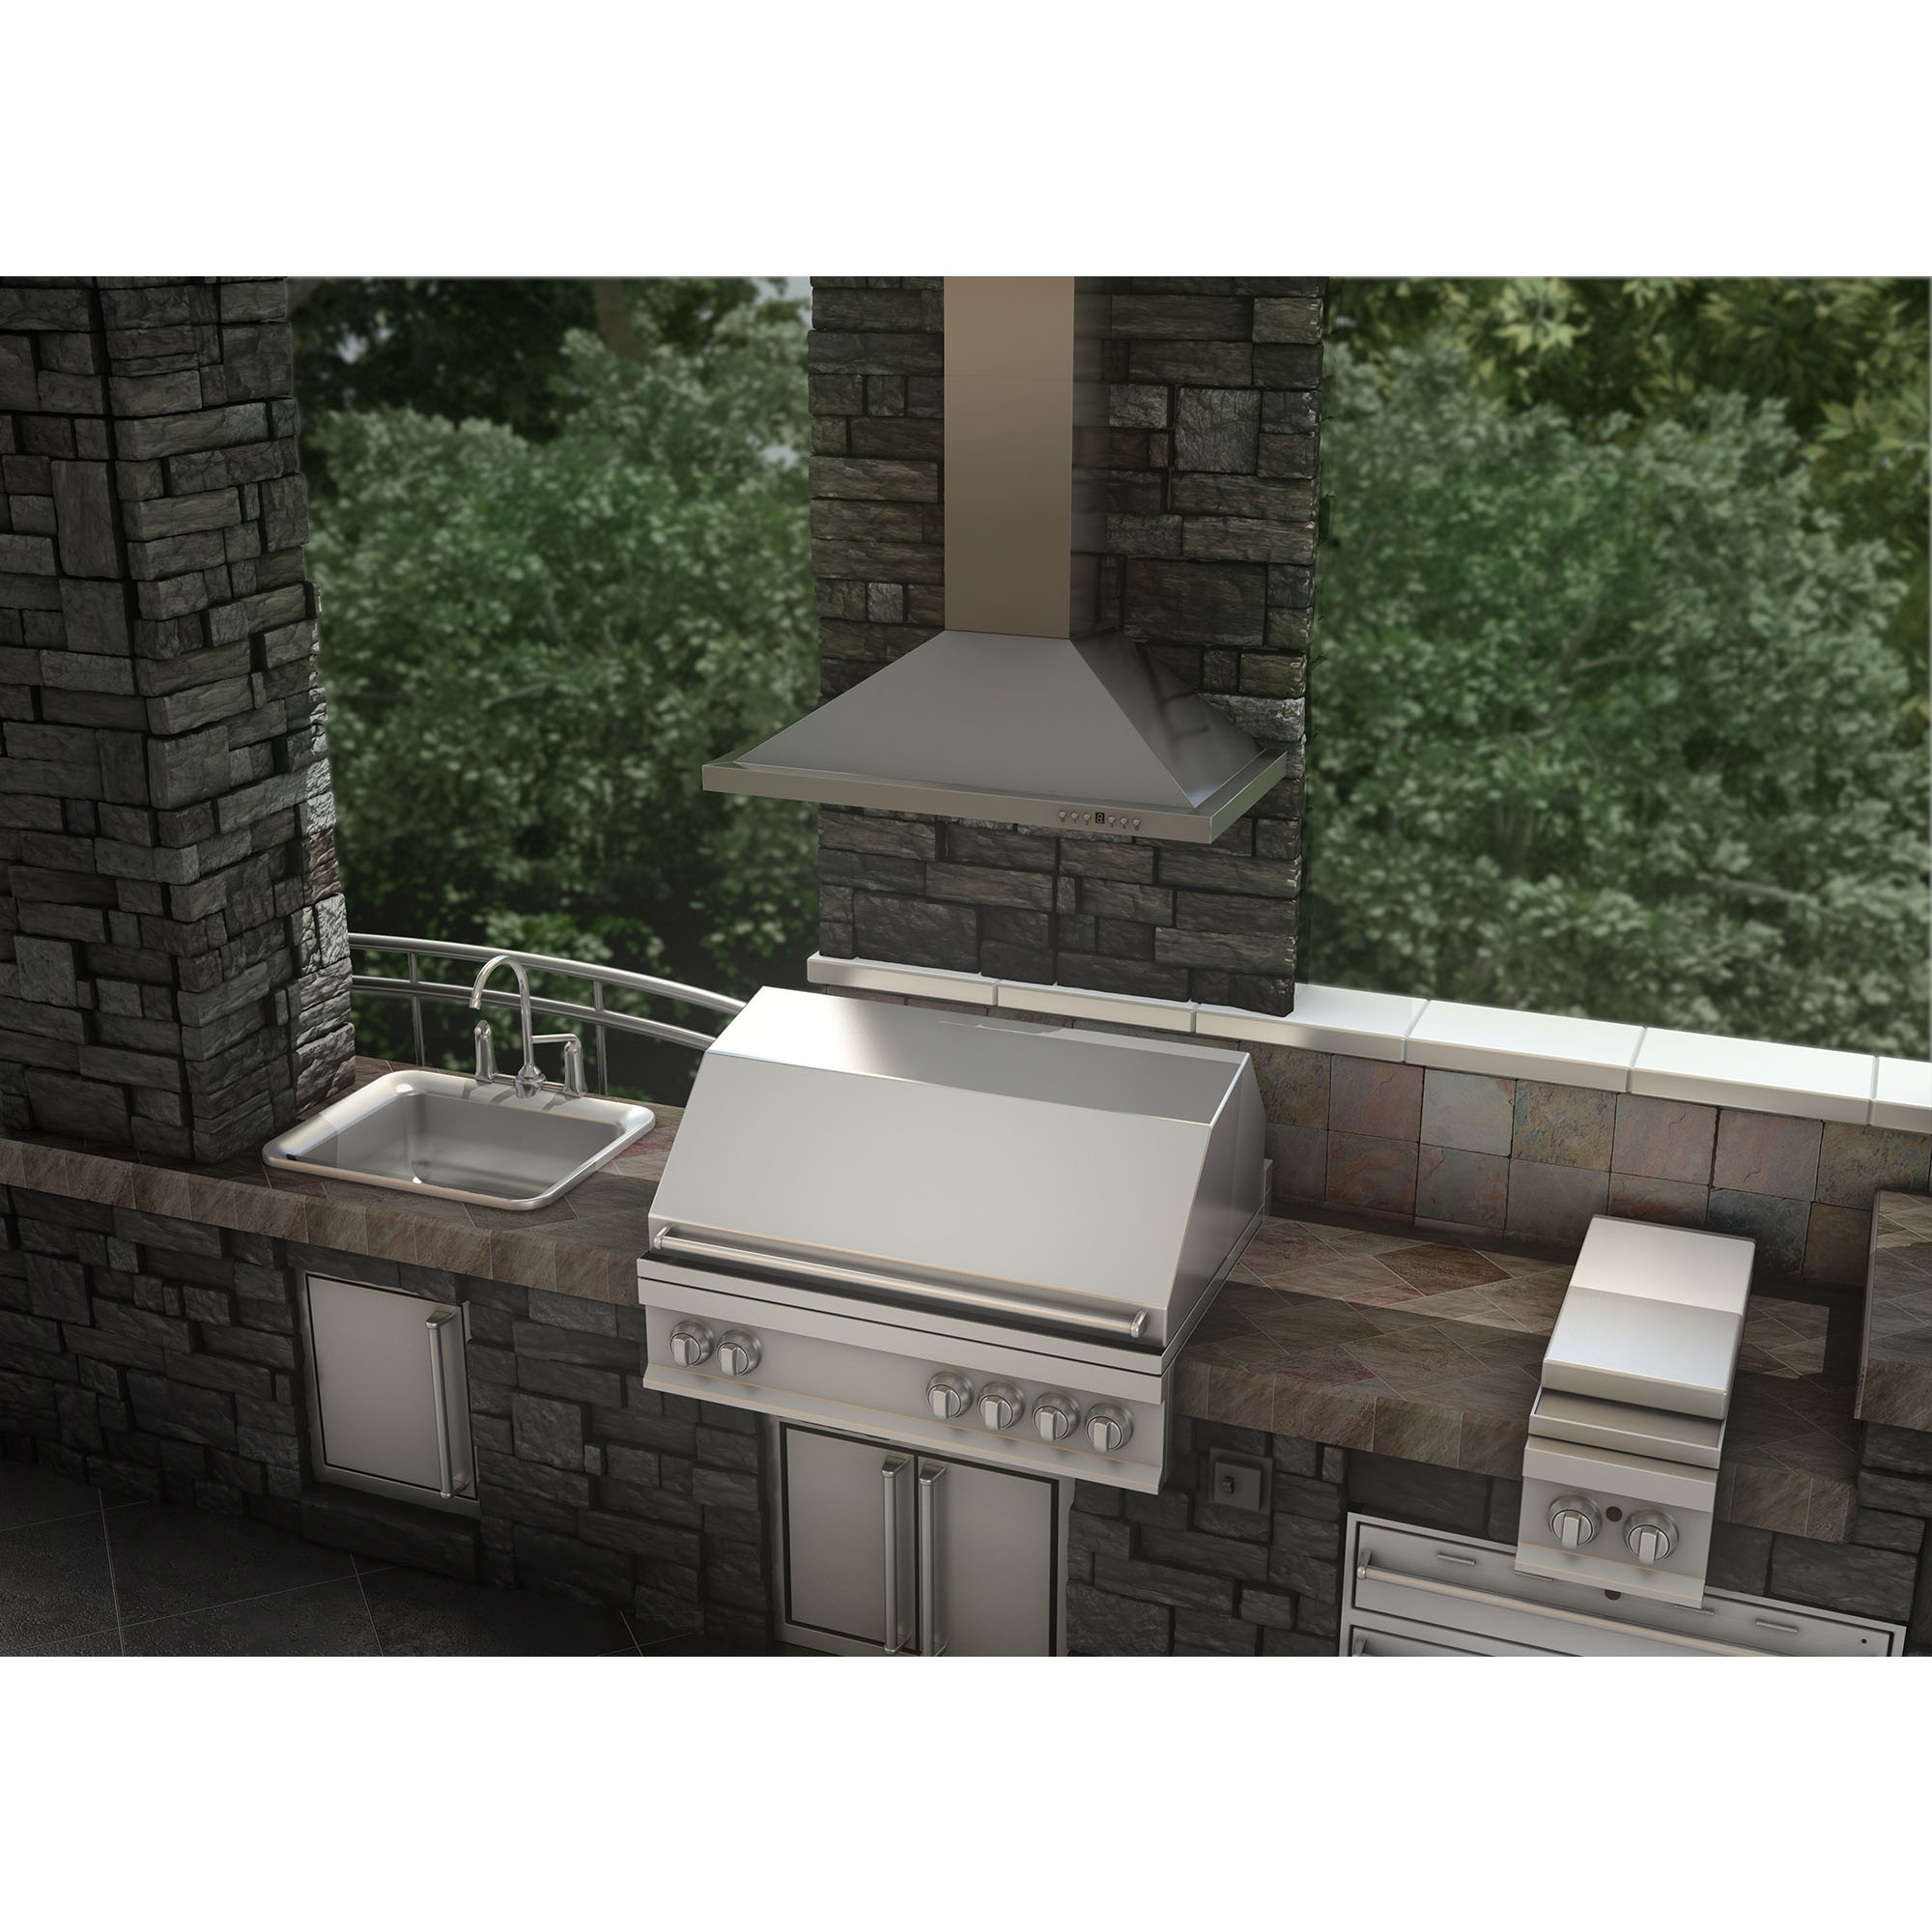 KB_New_Outdoor_Kitchen_Wall_Hoods_Cam_02.jpg